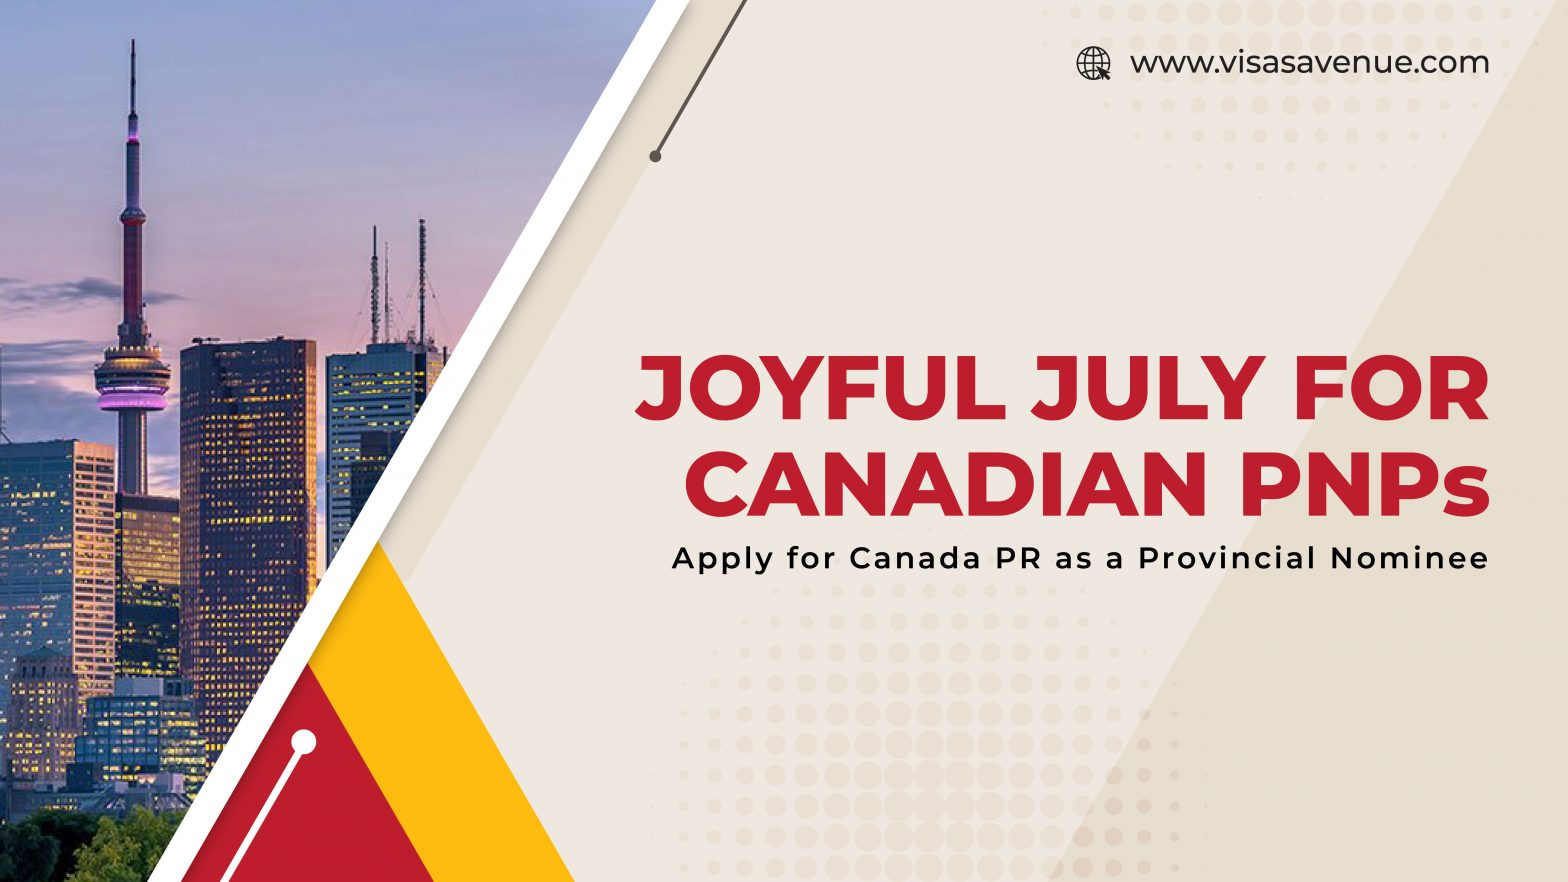 Canadian PNPs- Apply for Canada PR as a Provincial Nominee